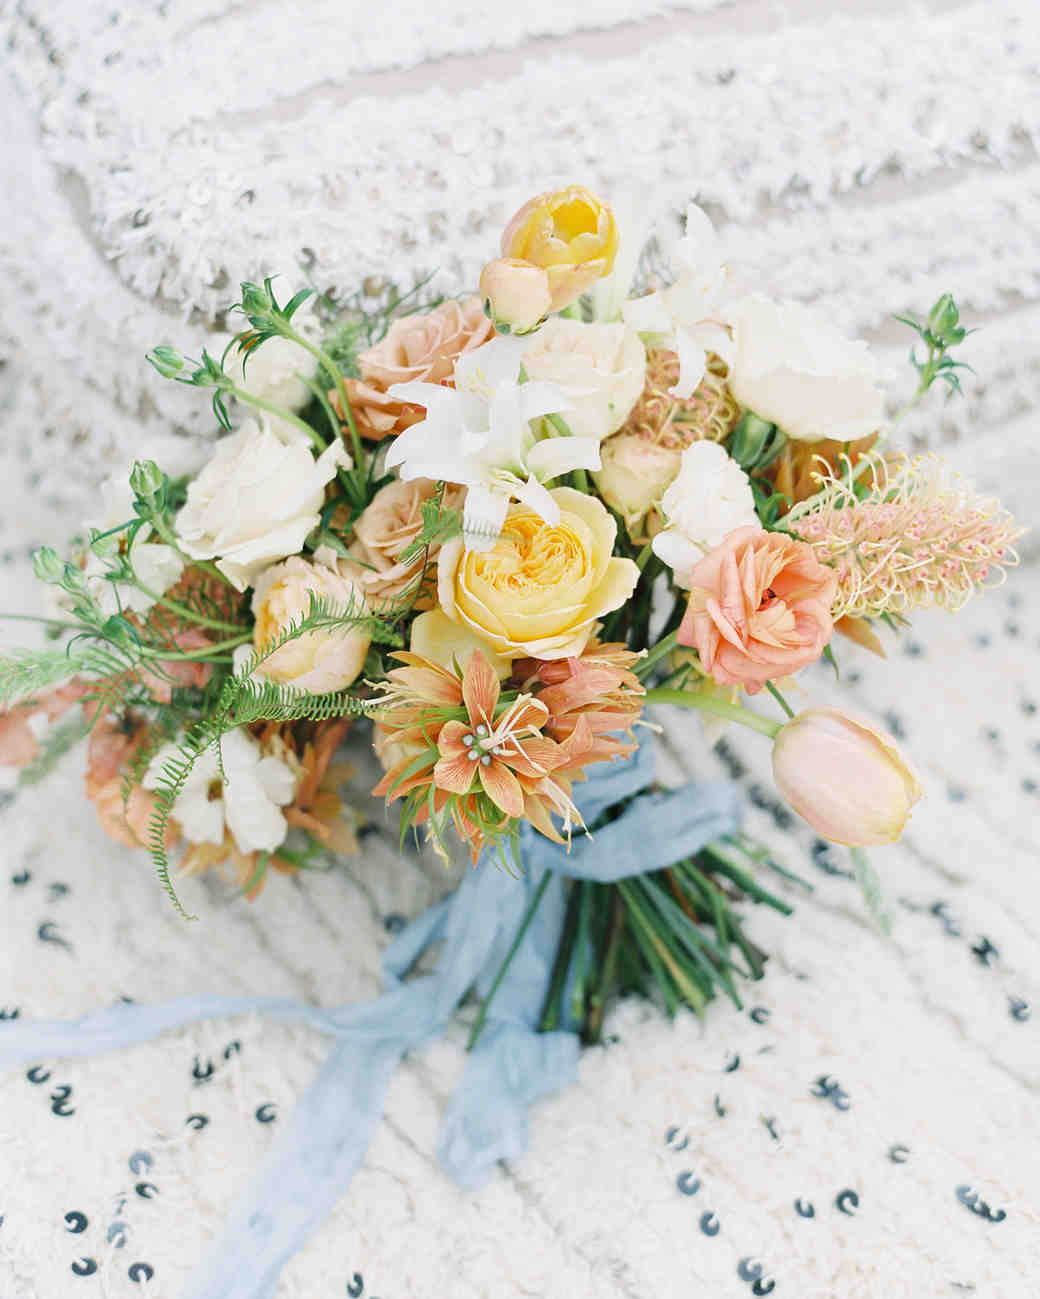 yellow, blush, and white blooms with greenery bouquet